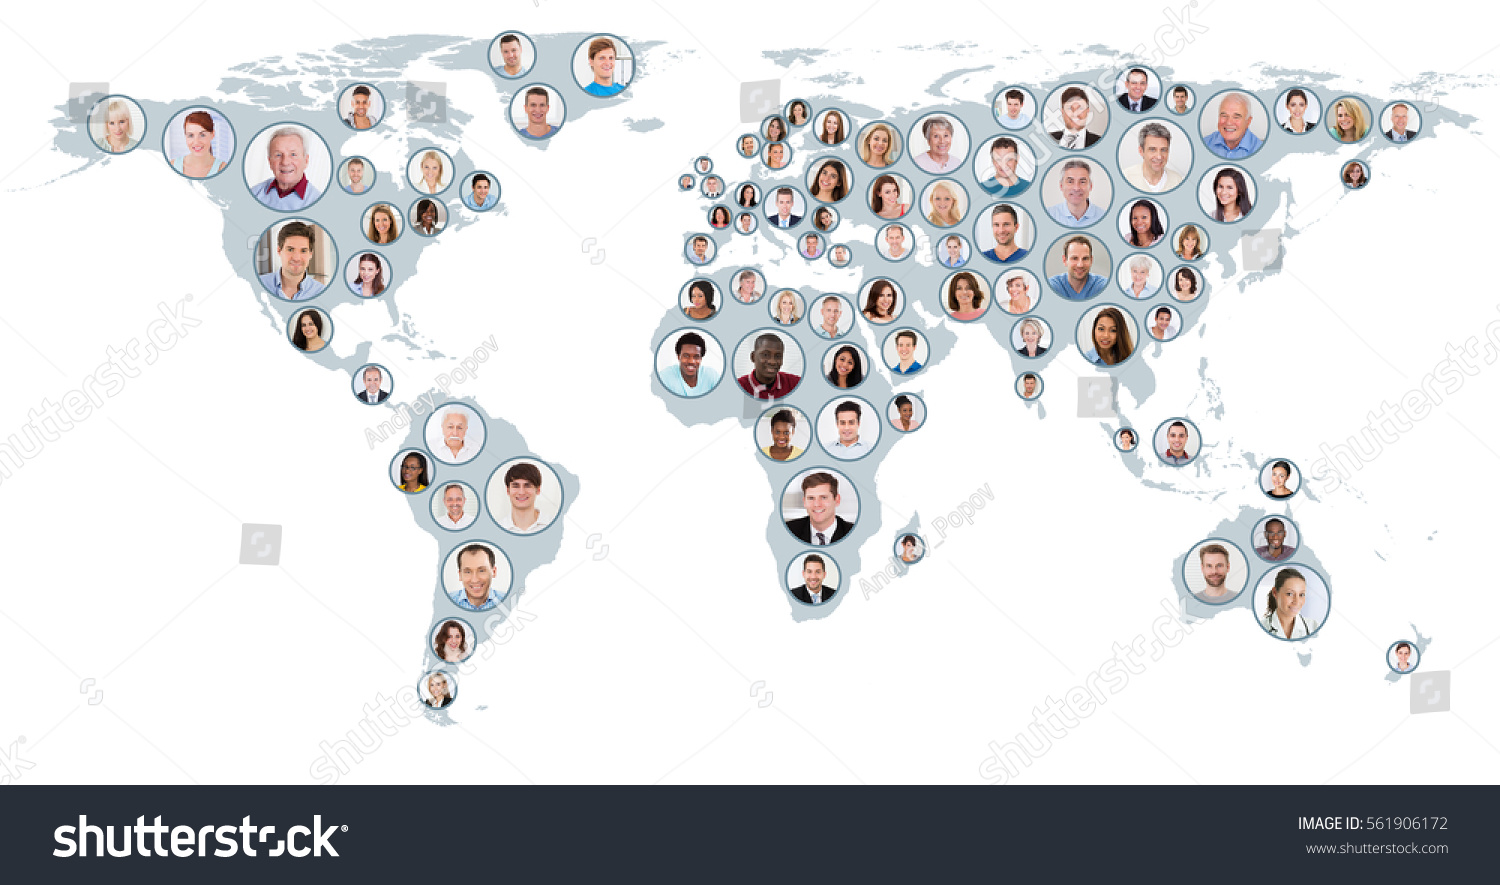 Collage multiethnic people on world map imagen de archivo stock collage of multiethnic people on world map at white background global business concept gumiabroncs Image collections